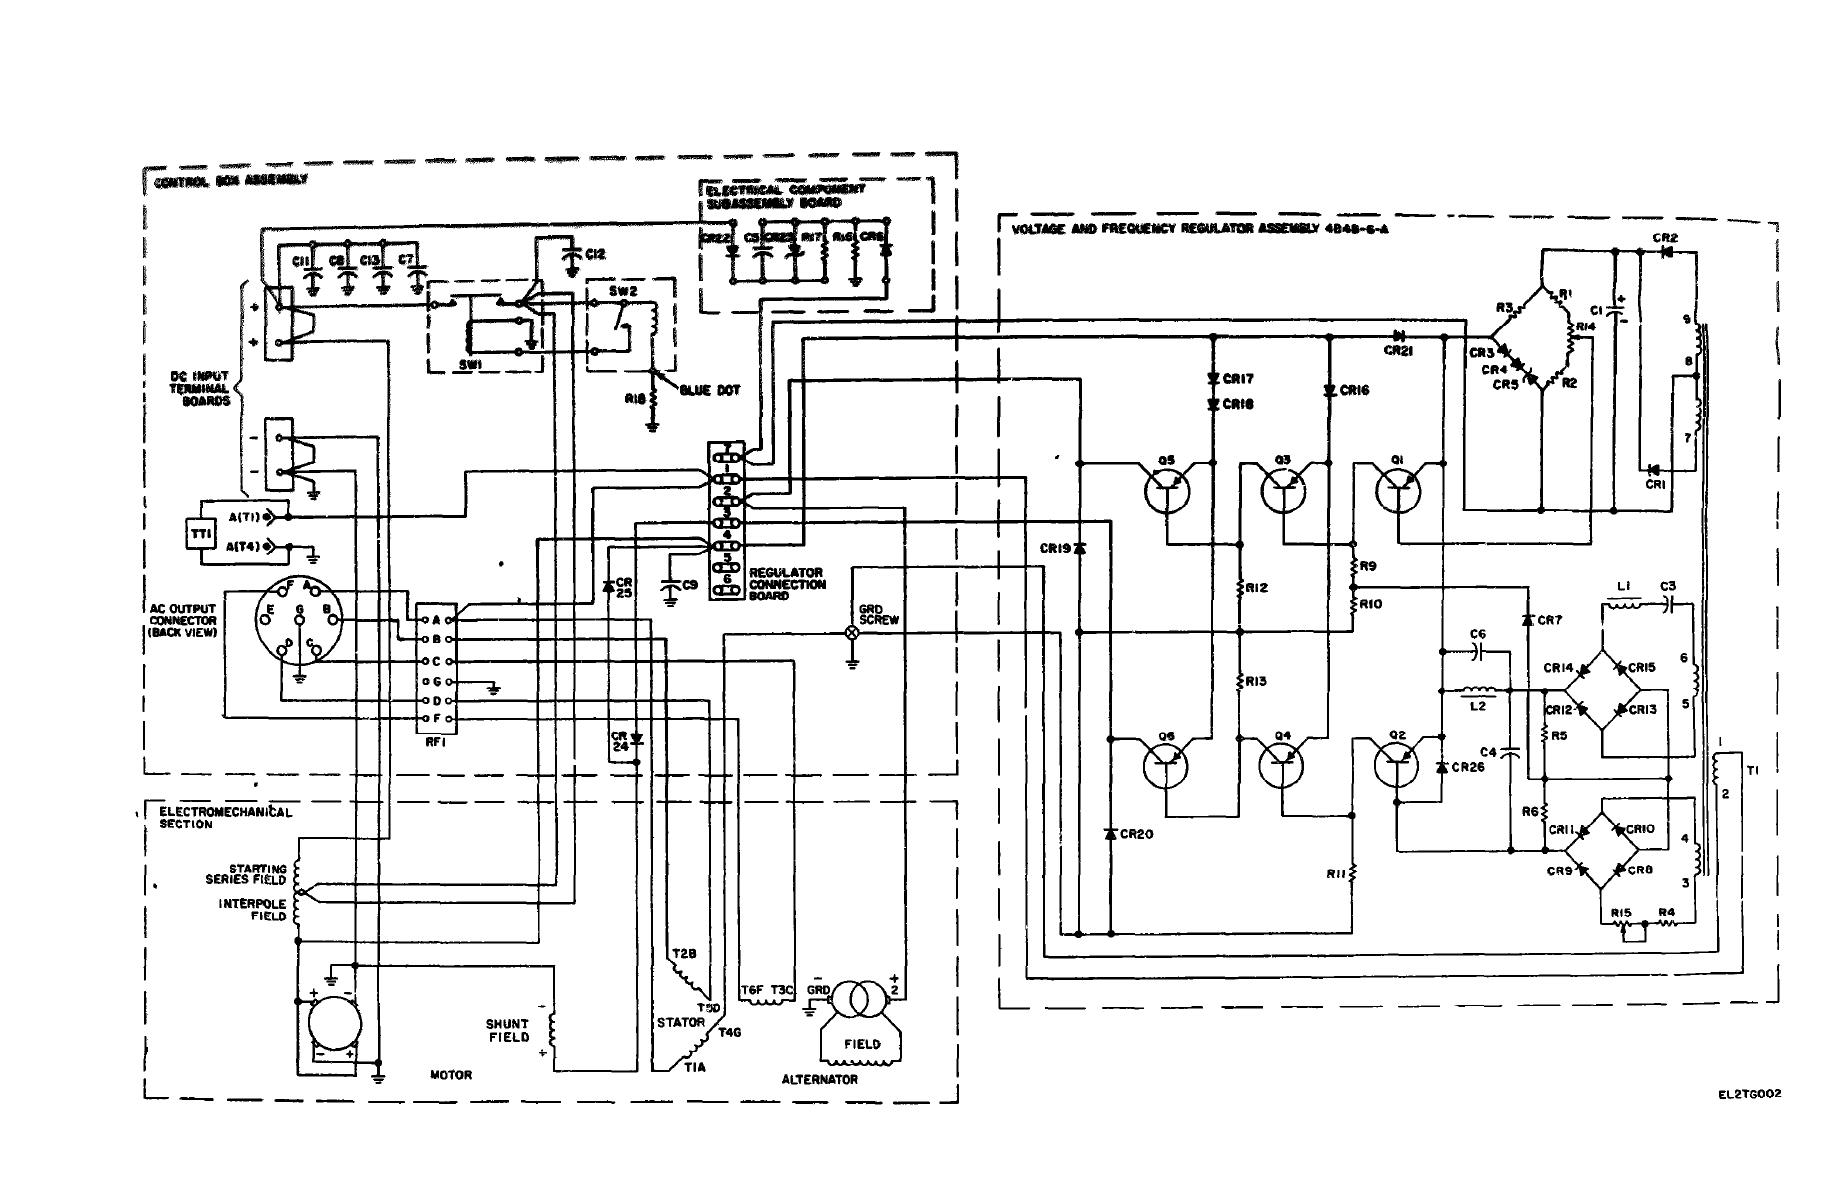 Figure Fo 2 Schematic Diagram For Motor Generator Pu 750 A Tm11 6125 256 34